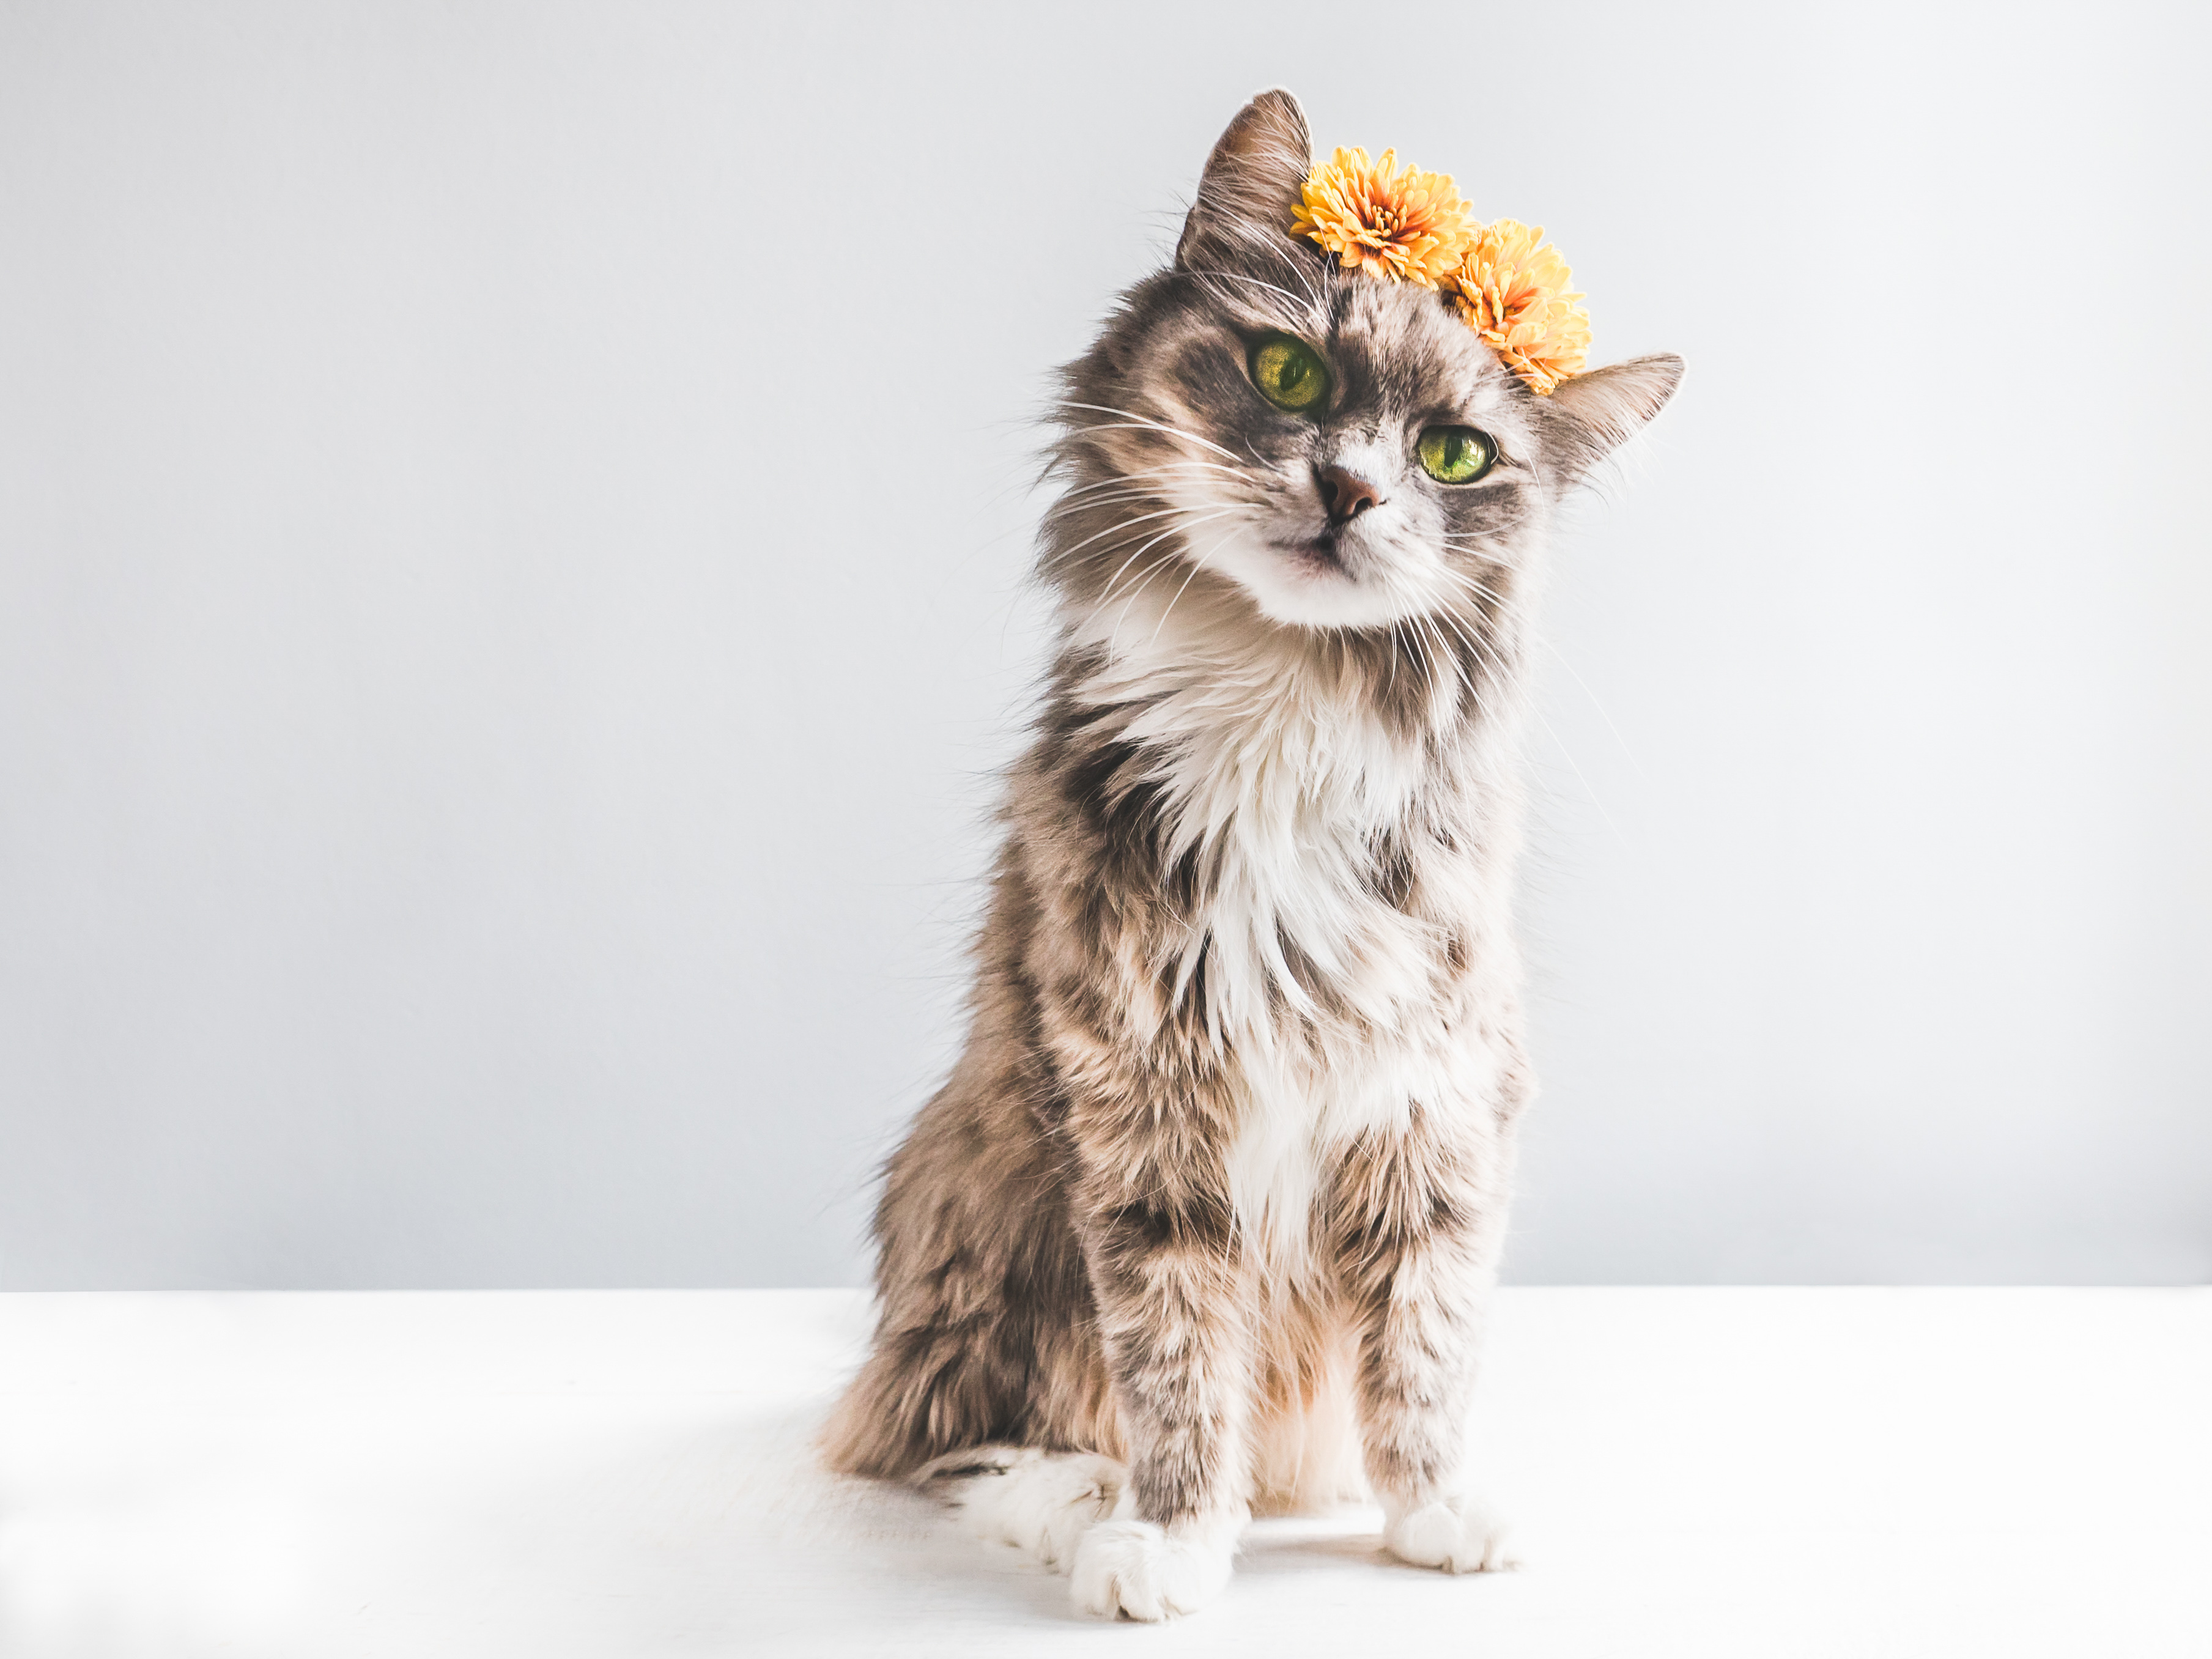 Charming, fluffy kitten with yellow flowers on a white background. Isolated, close-up